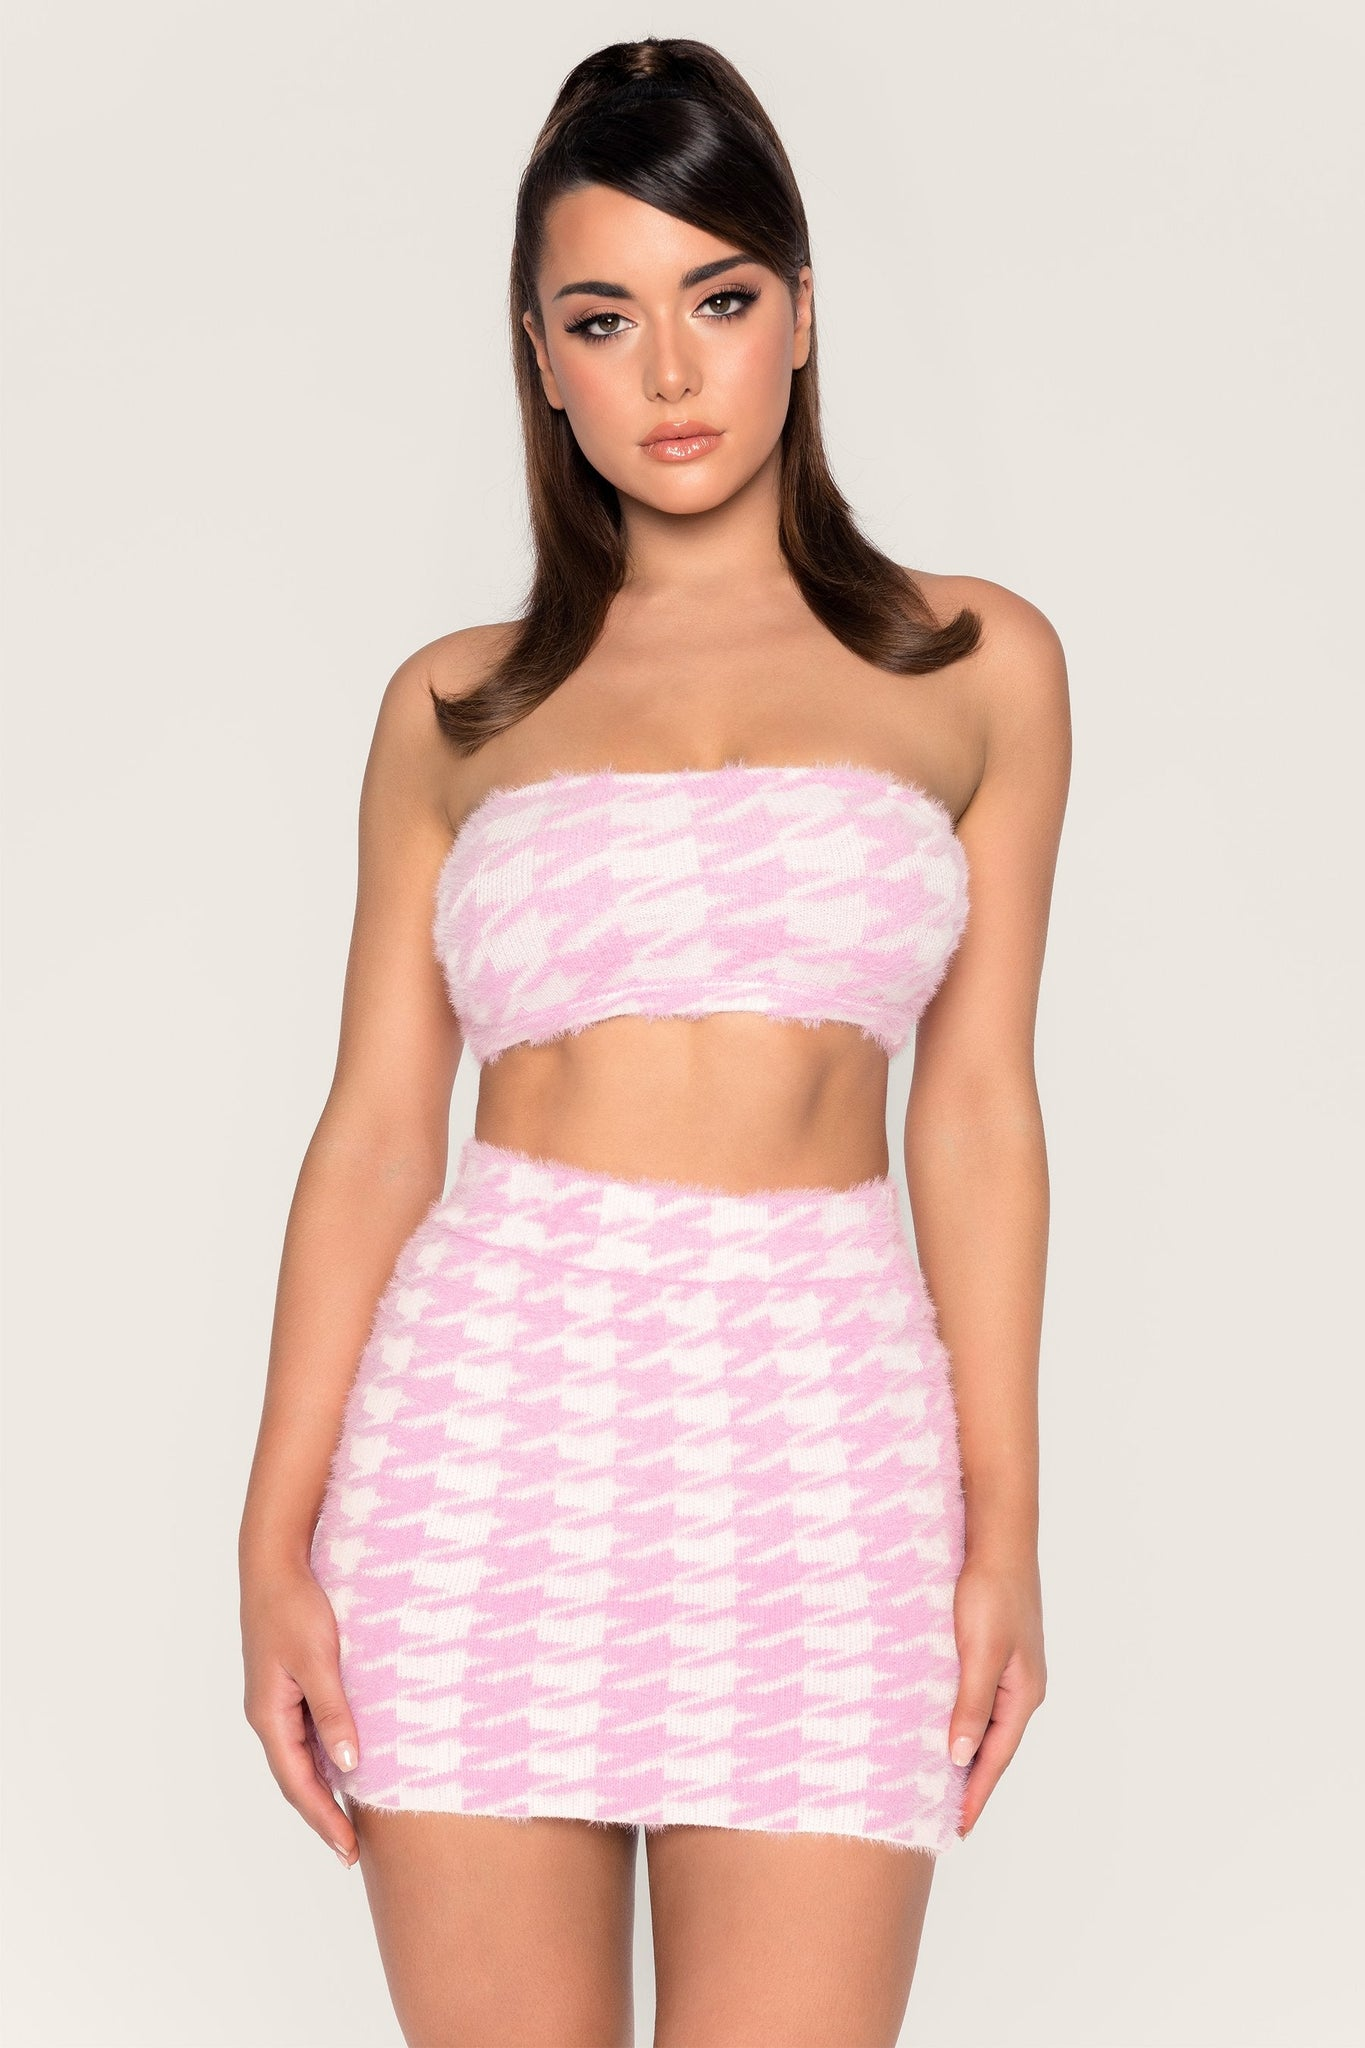 Cindie Fluffy Houndstooth Bandeau Top - Baby Pink - MESHKI